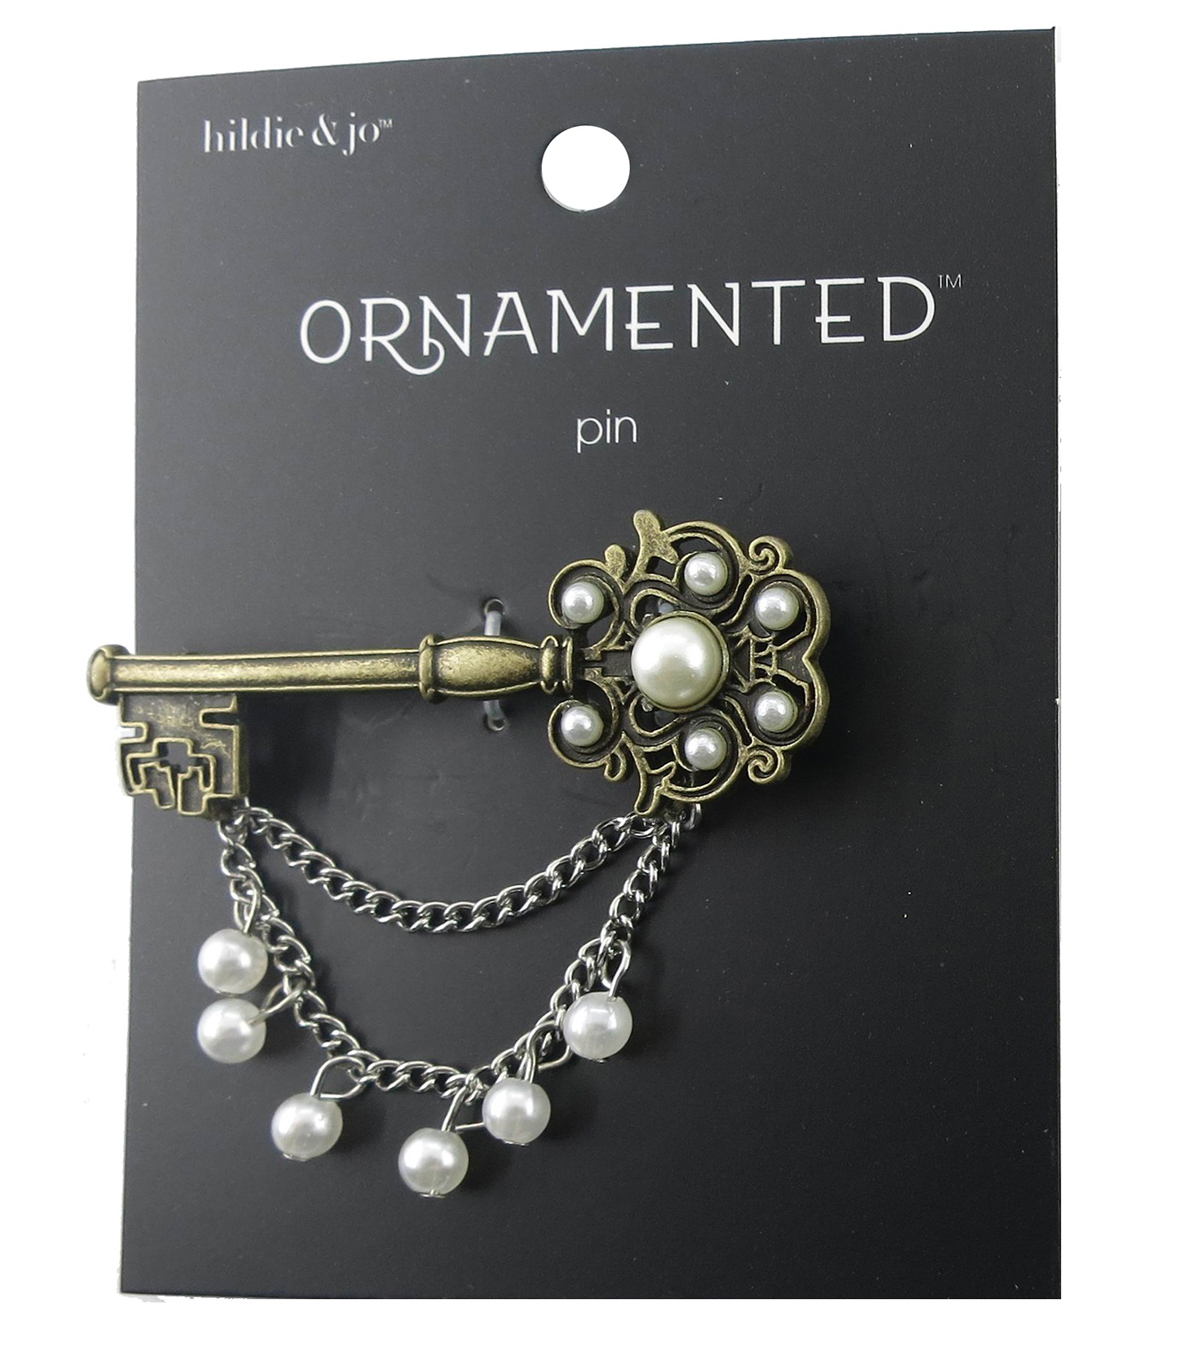 hildie & jo Ornamented Key Antique Gold Pin with Silver Chain